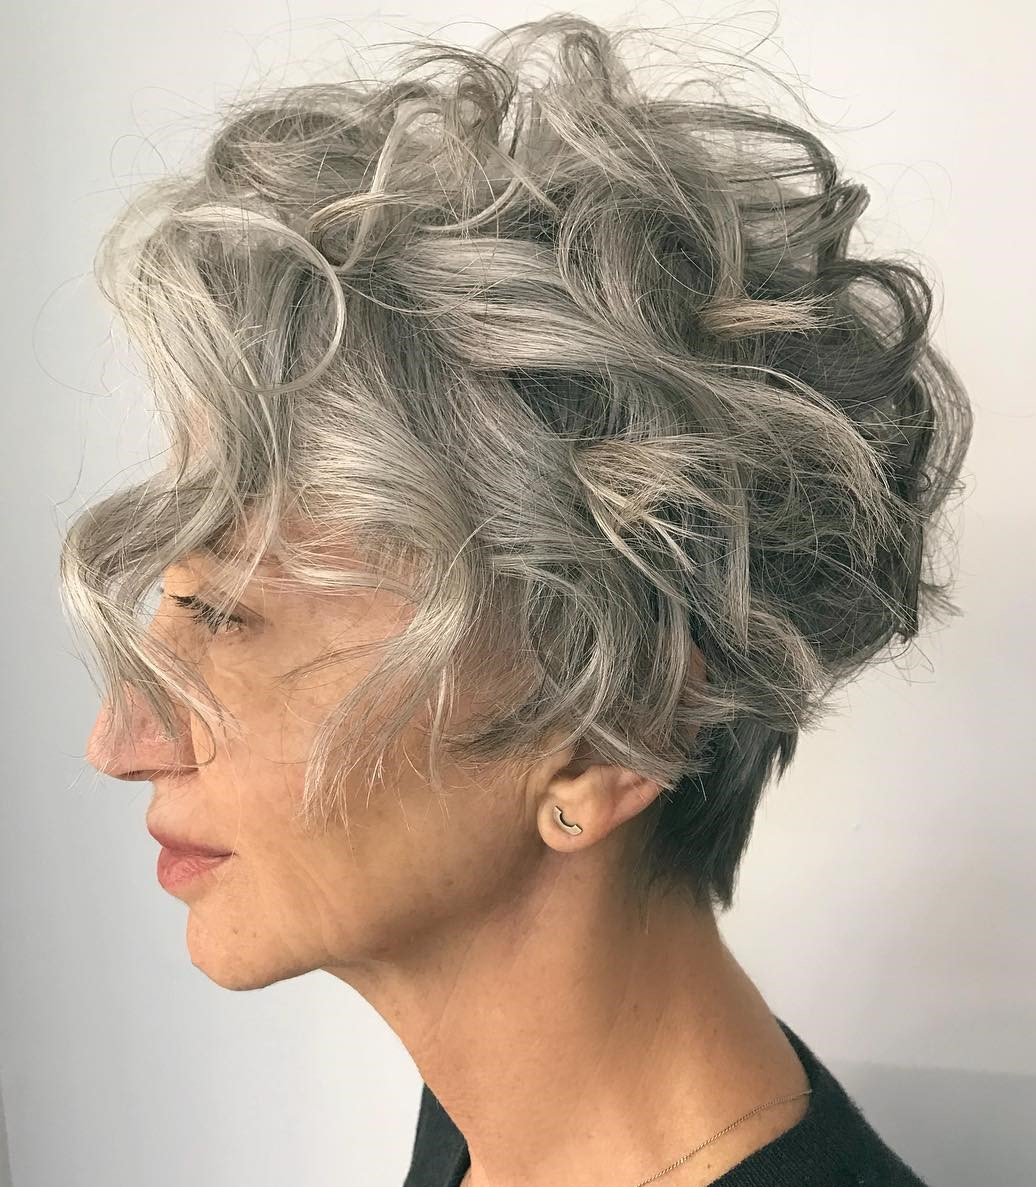 30 Top Curly Pixie Cut Ideas To Choose In 2020 Hair Adviser